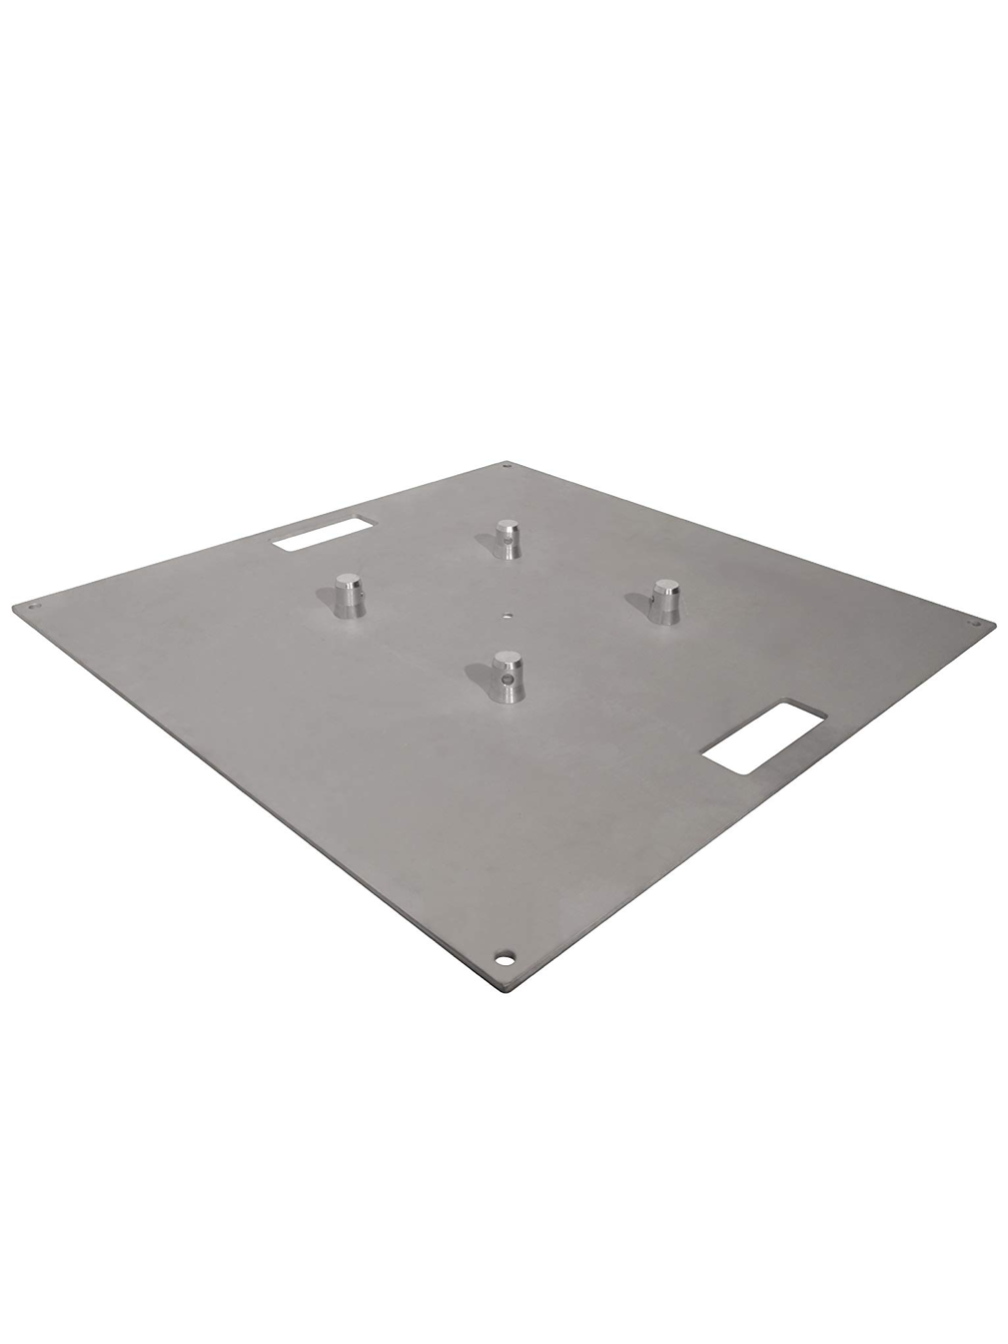 Trusst 30in Aluminum Base Plate